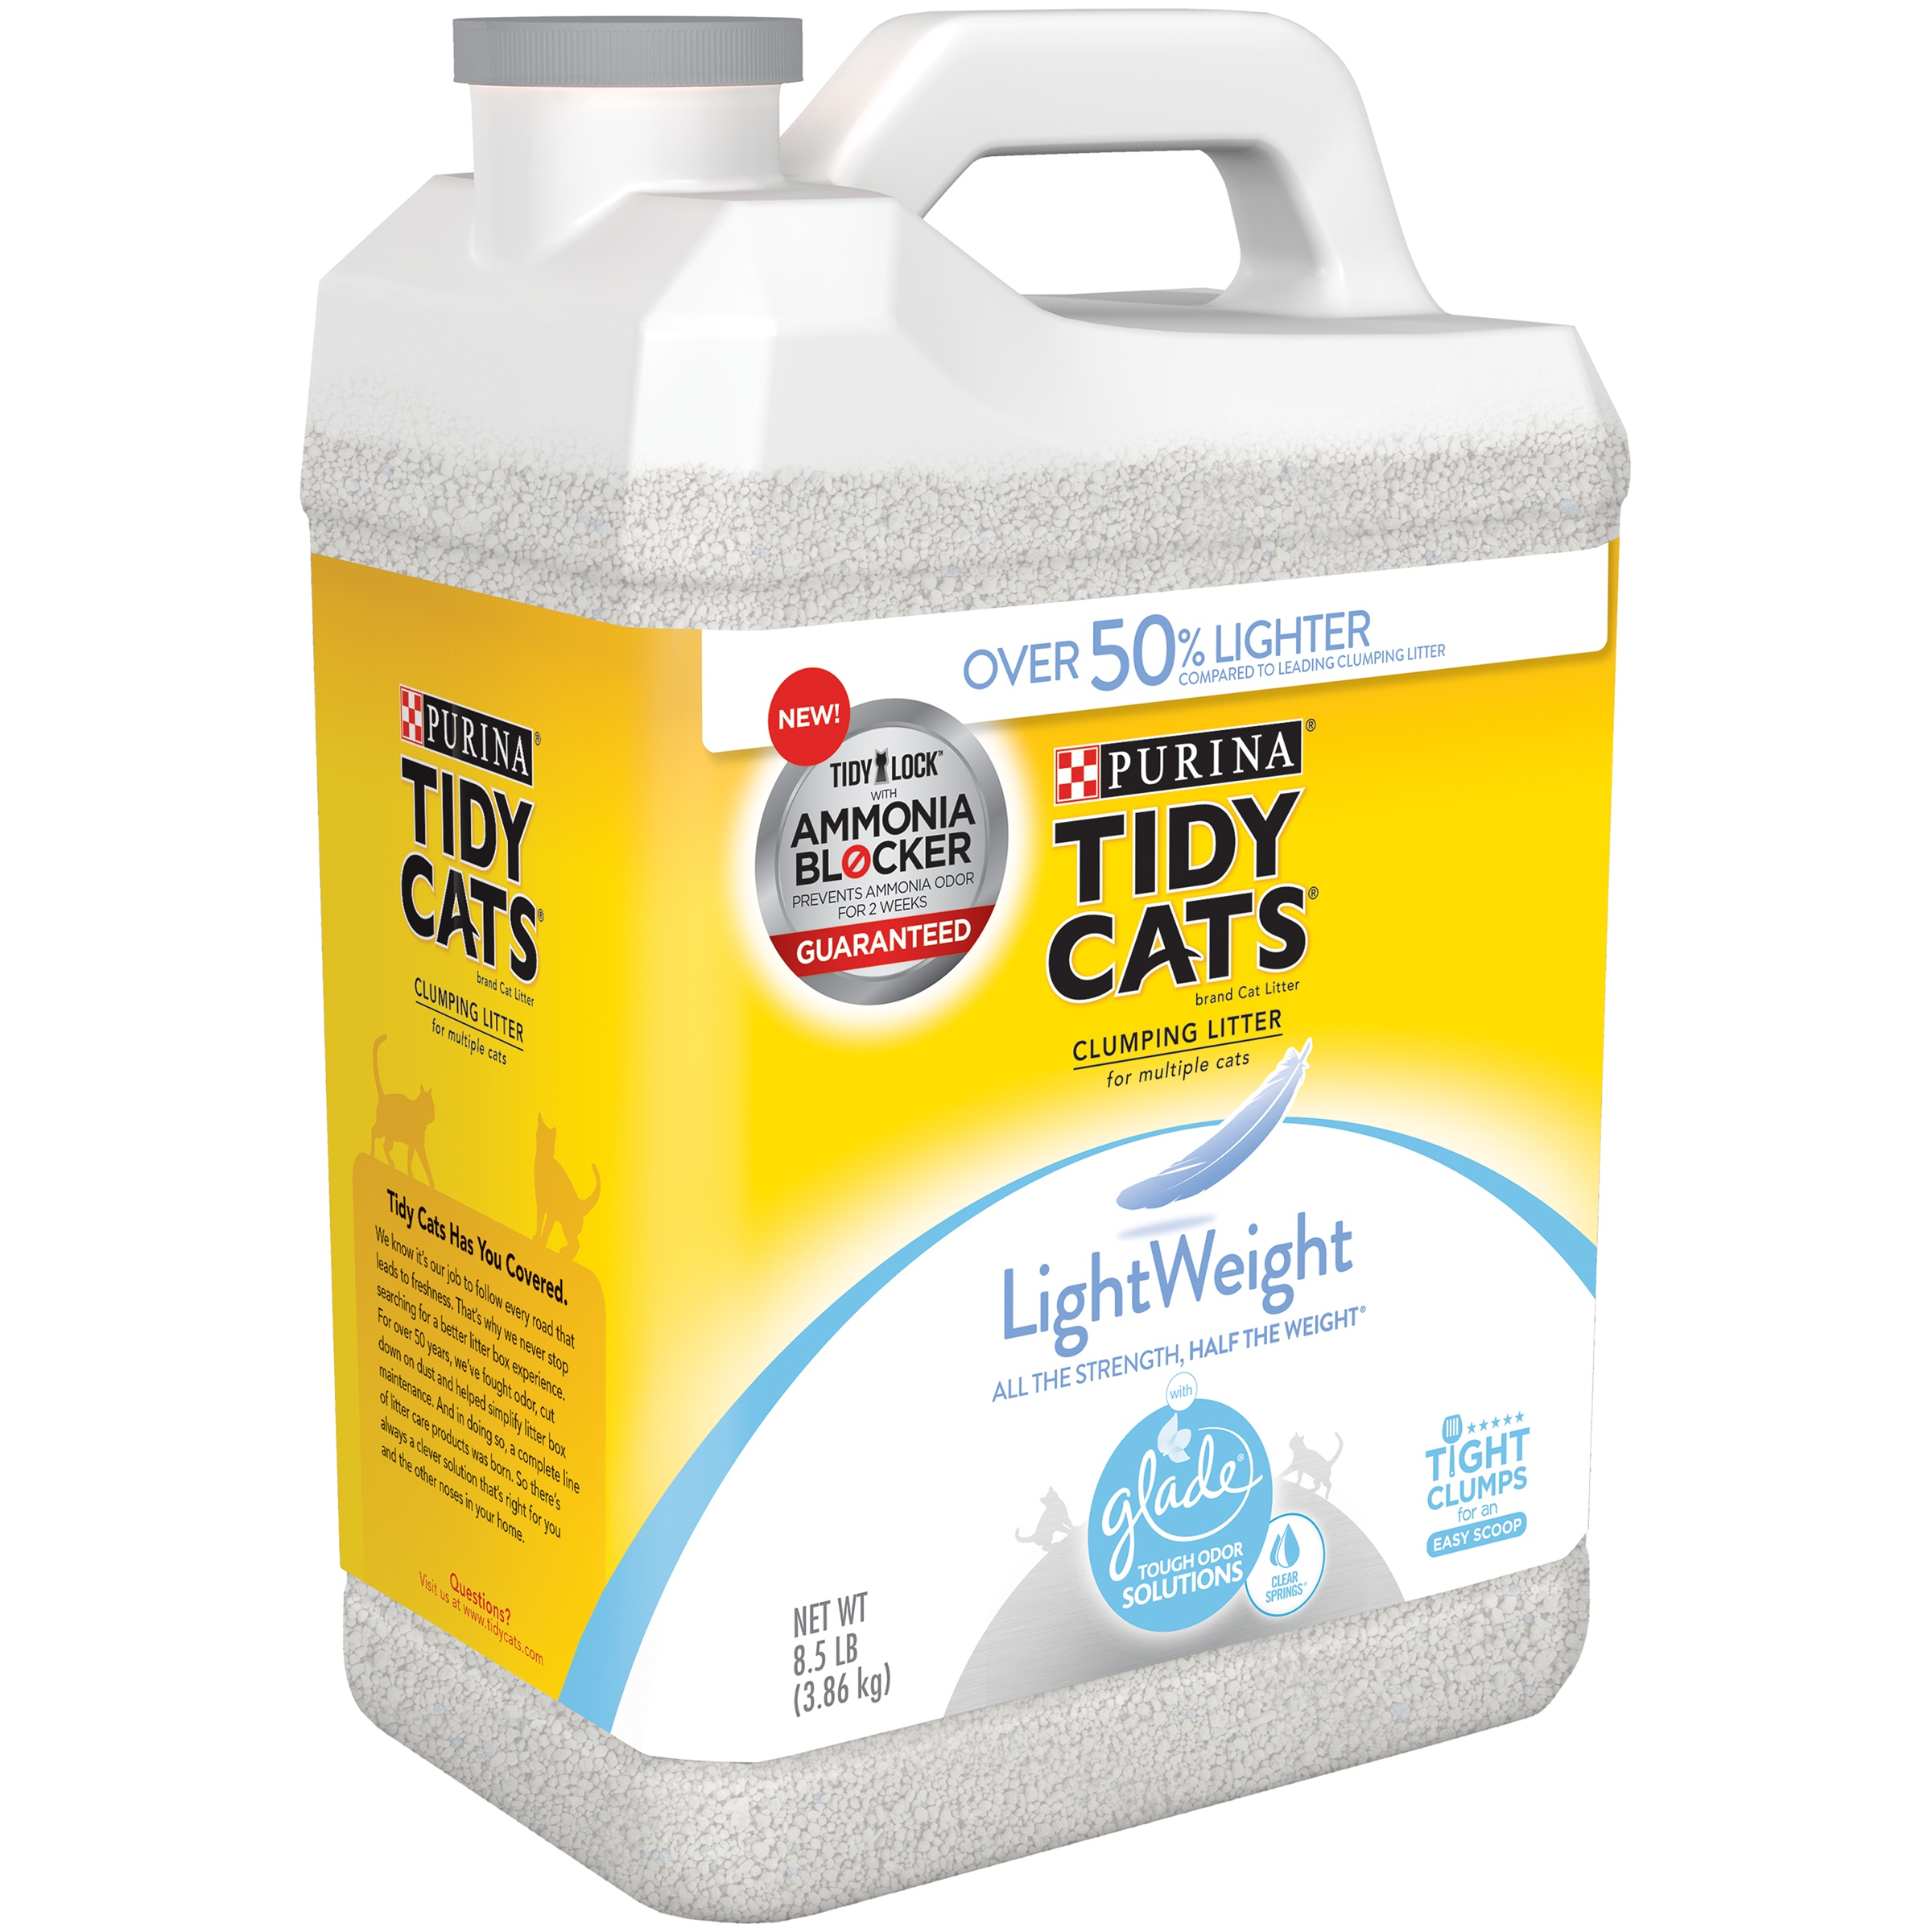 Purina Tidy Cats LightWeight Clumping Cat Litter with